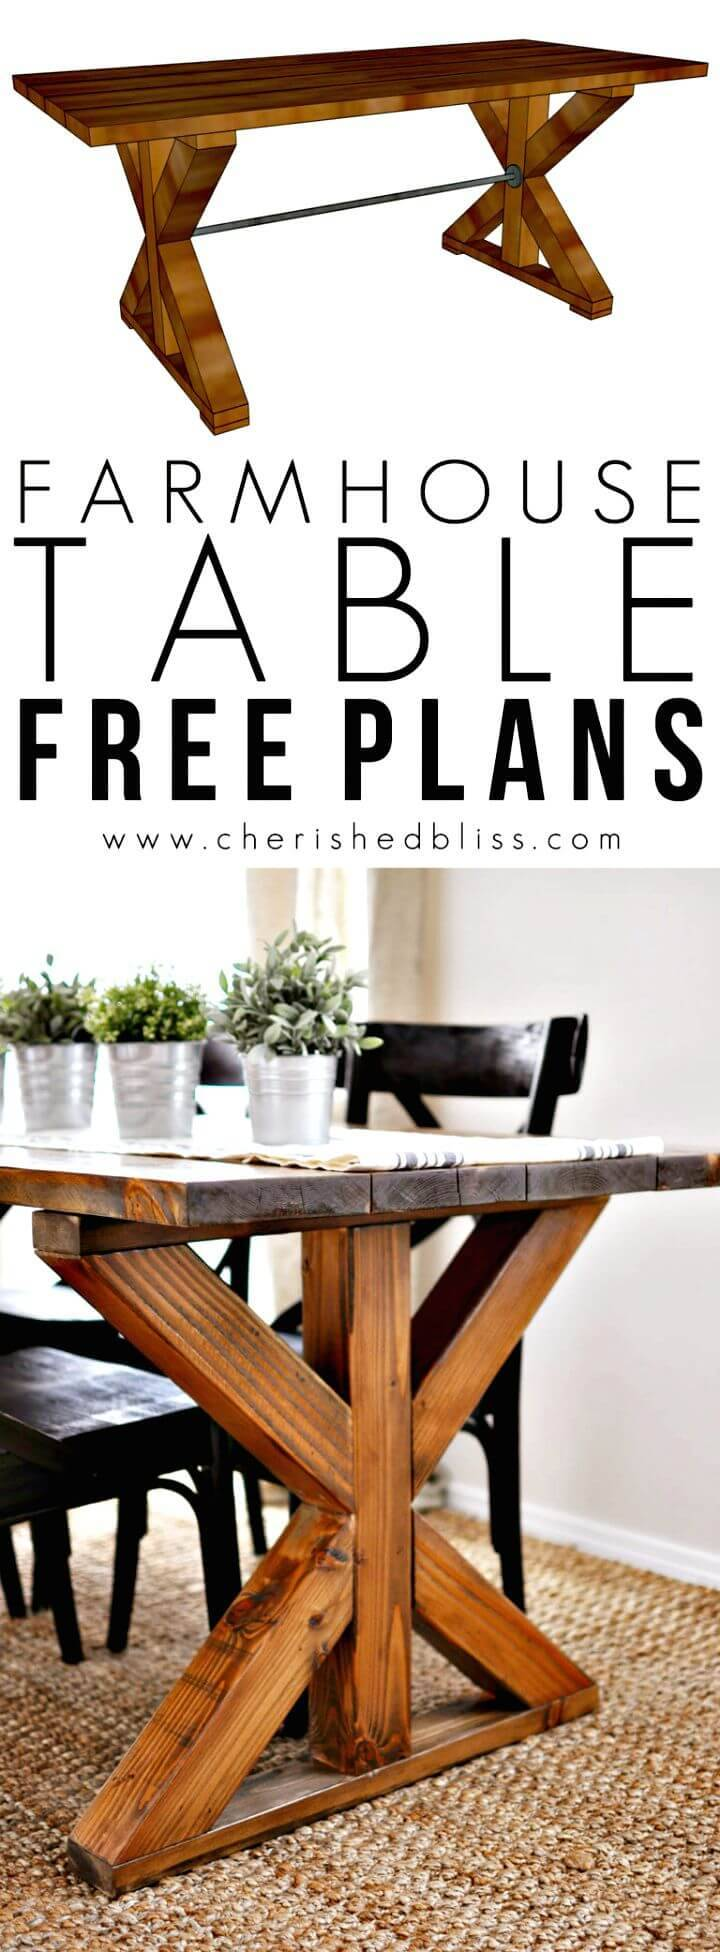 Learn How to Build X Brace Farmhouse Table